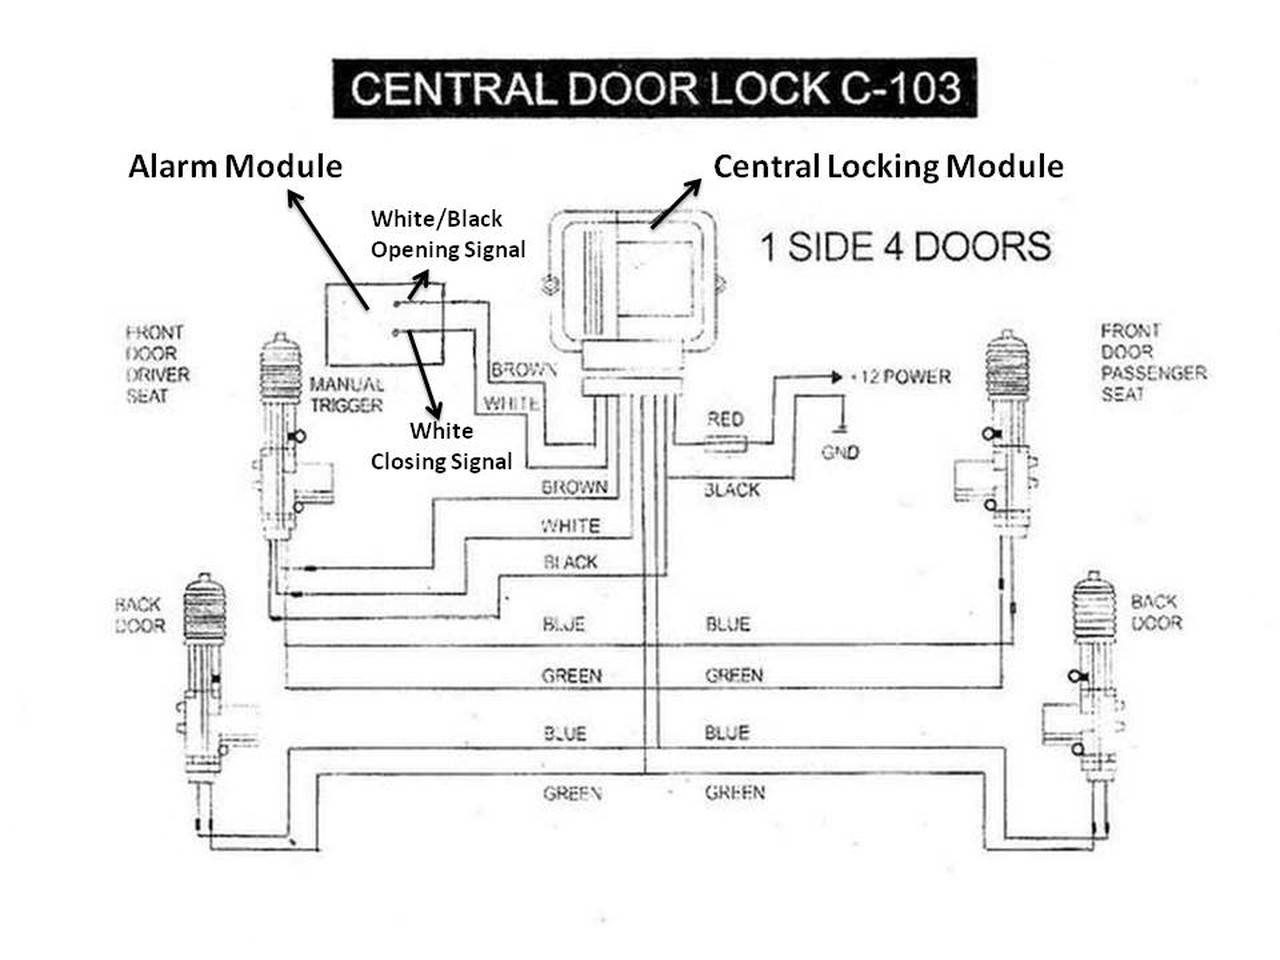 hight resolution of central door lock wiring diagram wiring diagram rows automatic door lock wiring diagram schematic